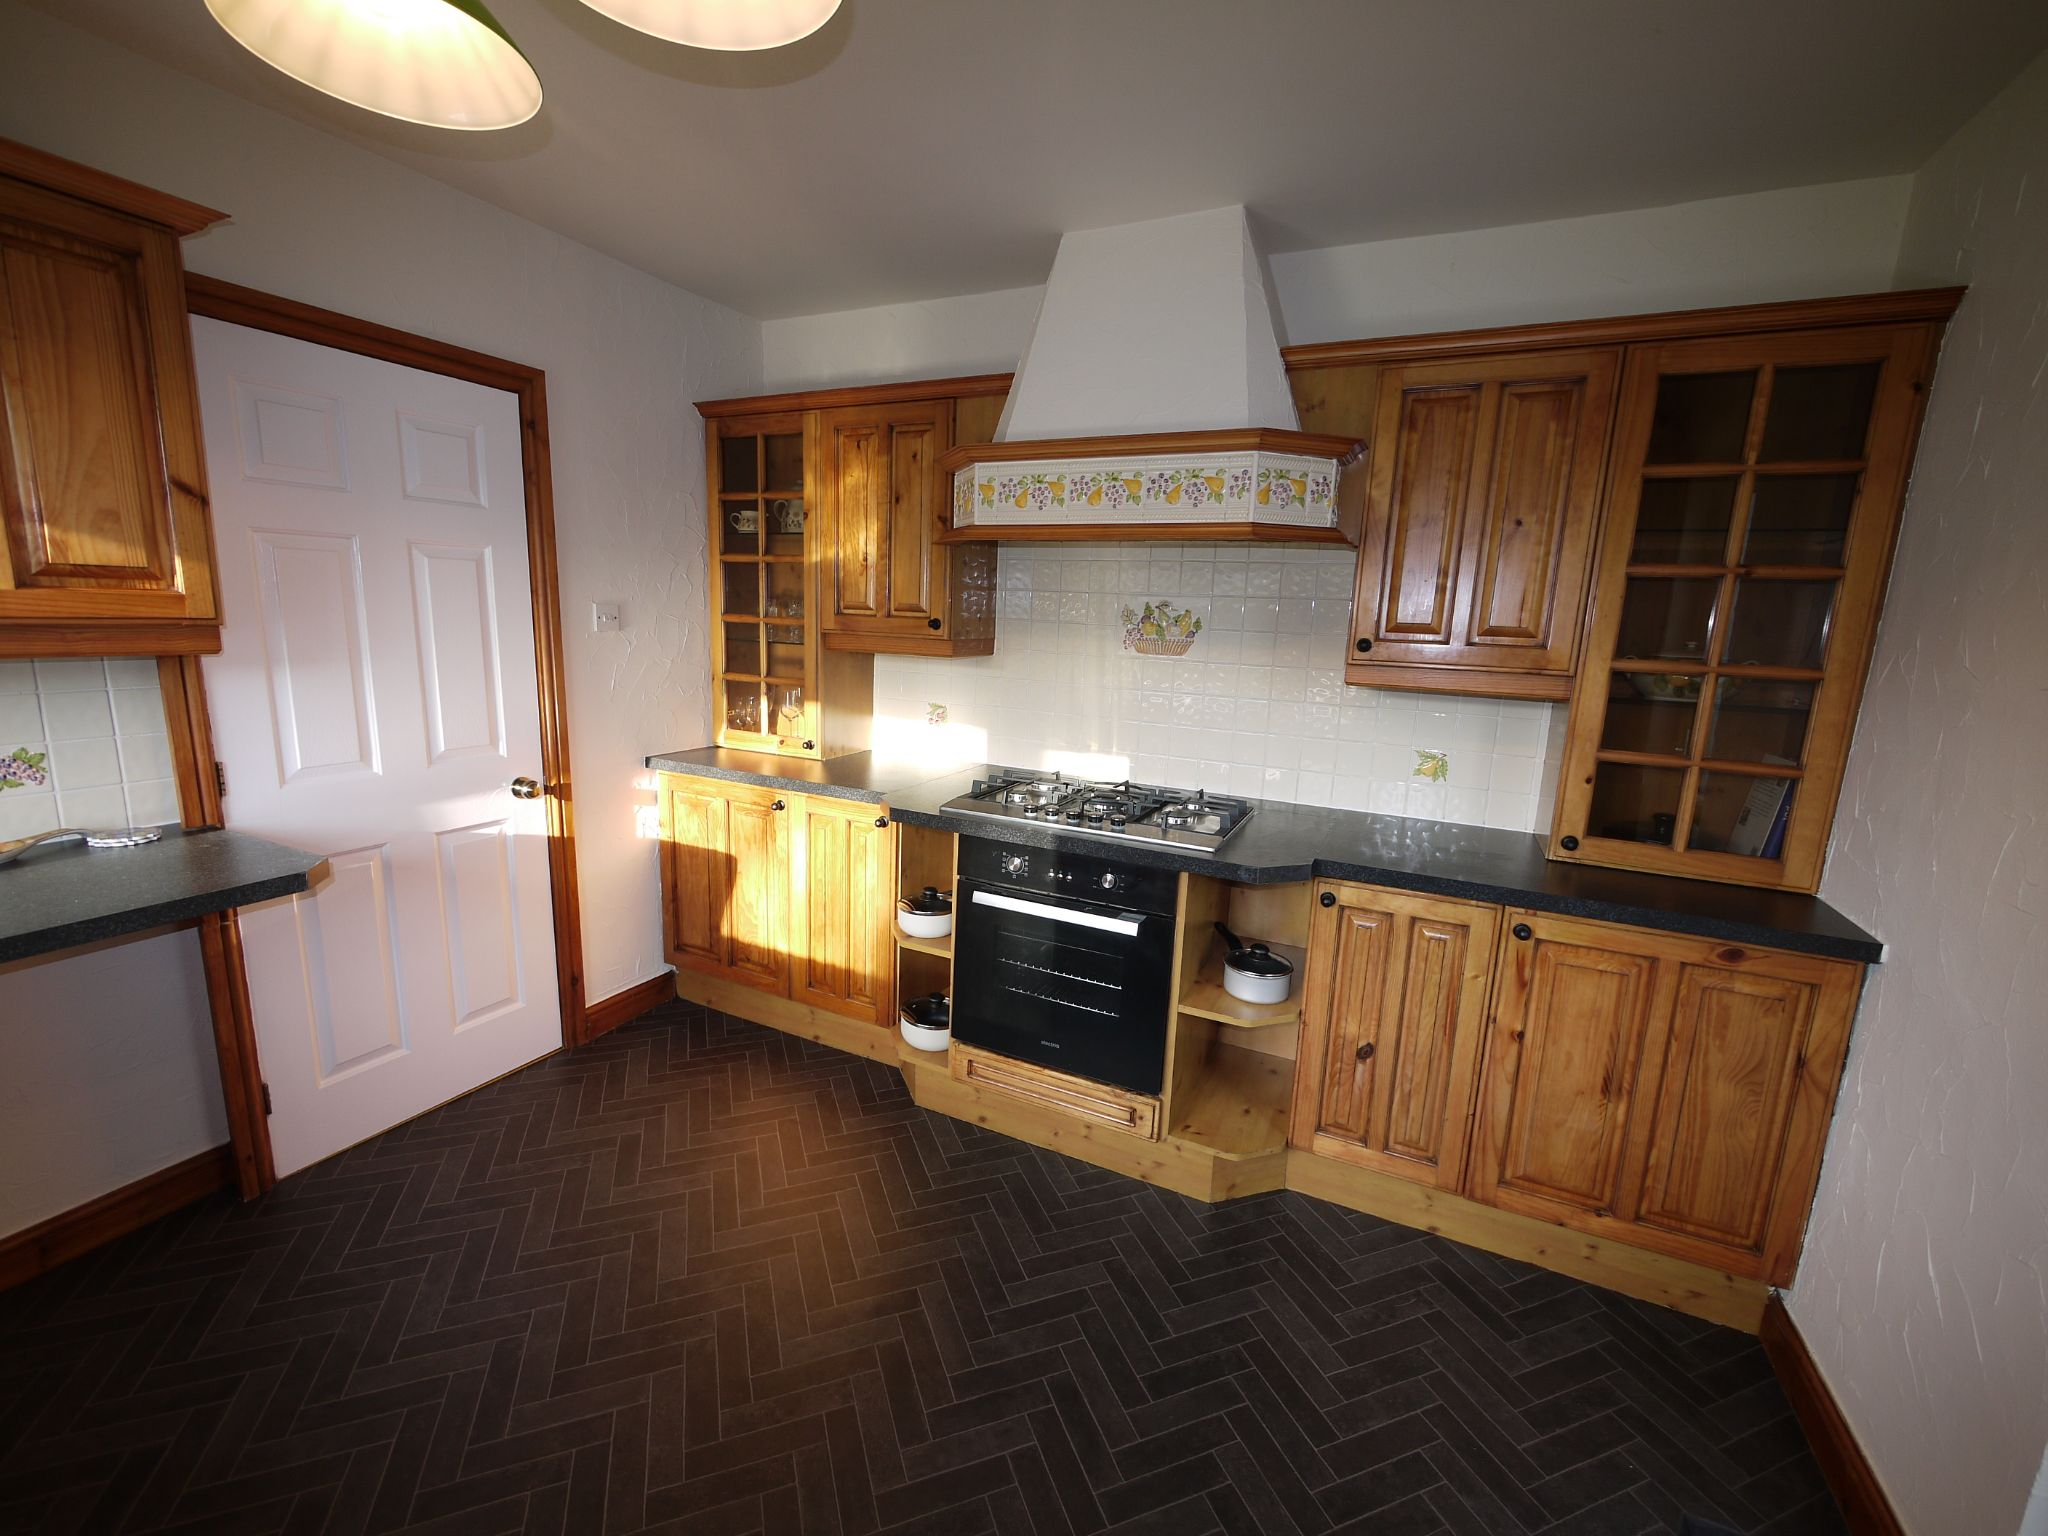 5 bedroom detached bungalow For Sale in Brighouse - kitchen.